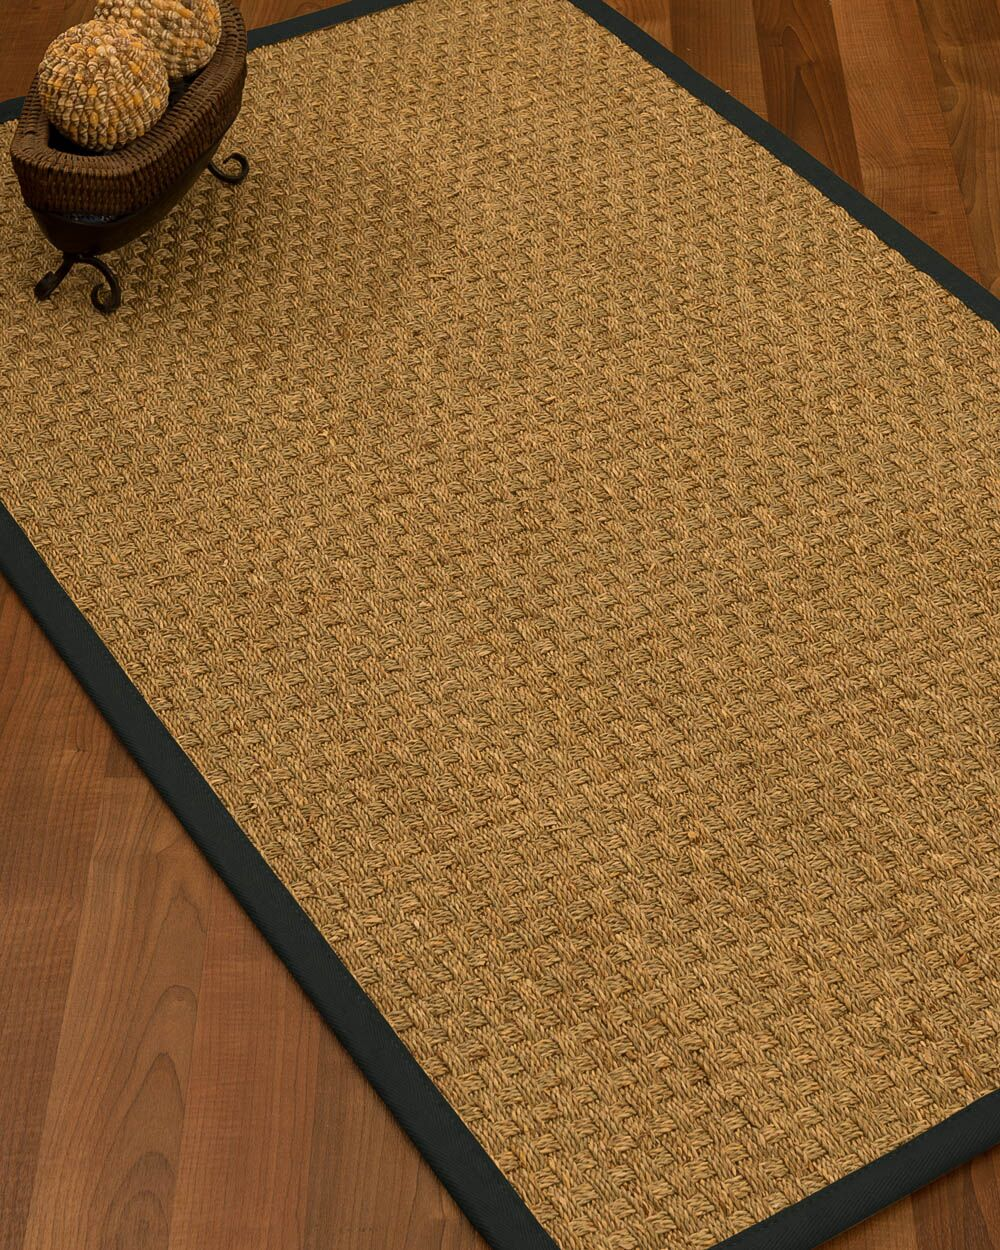 Antiqua Border Hand-Woven Beige/Onyx Area Rug Rug Pad Included: No, Rug Size: Runner 2'6